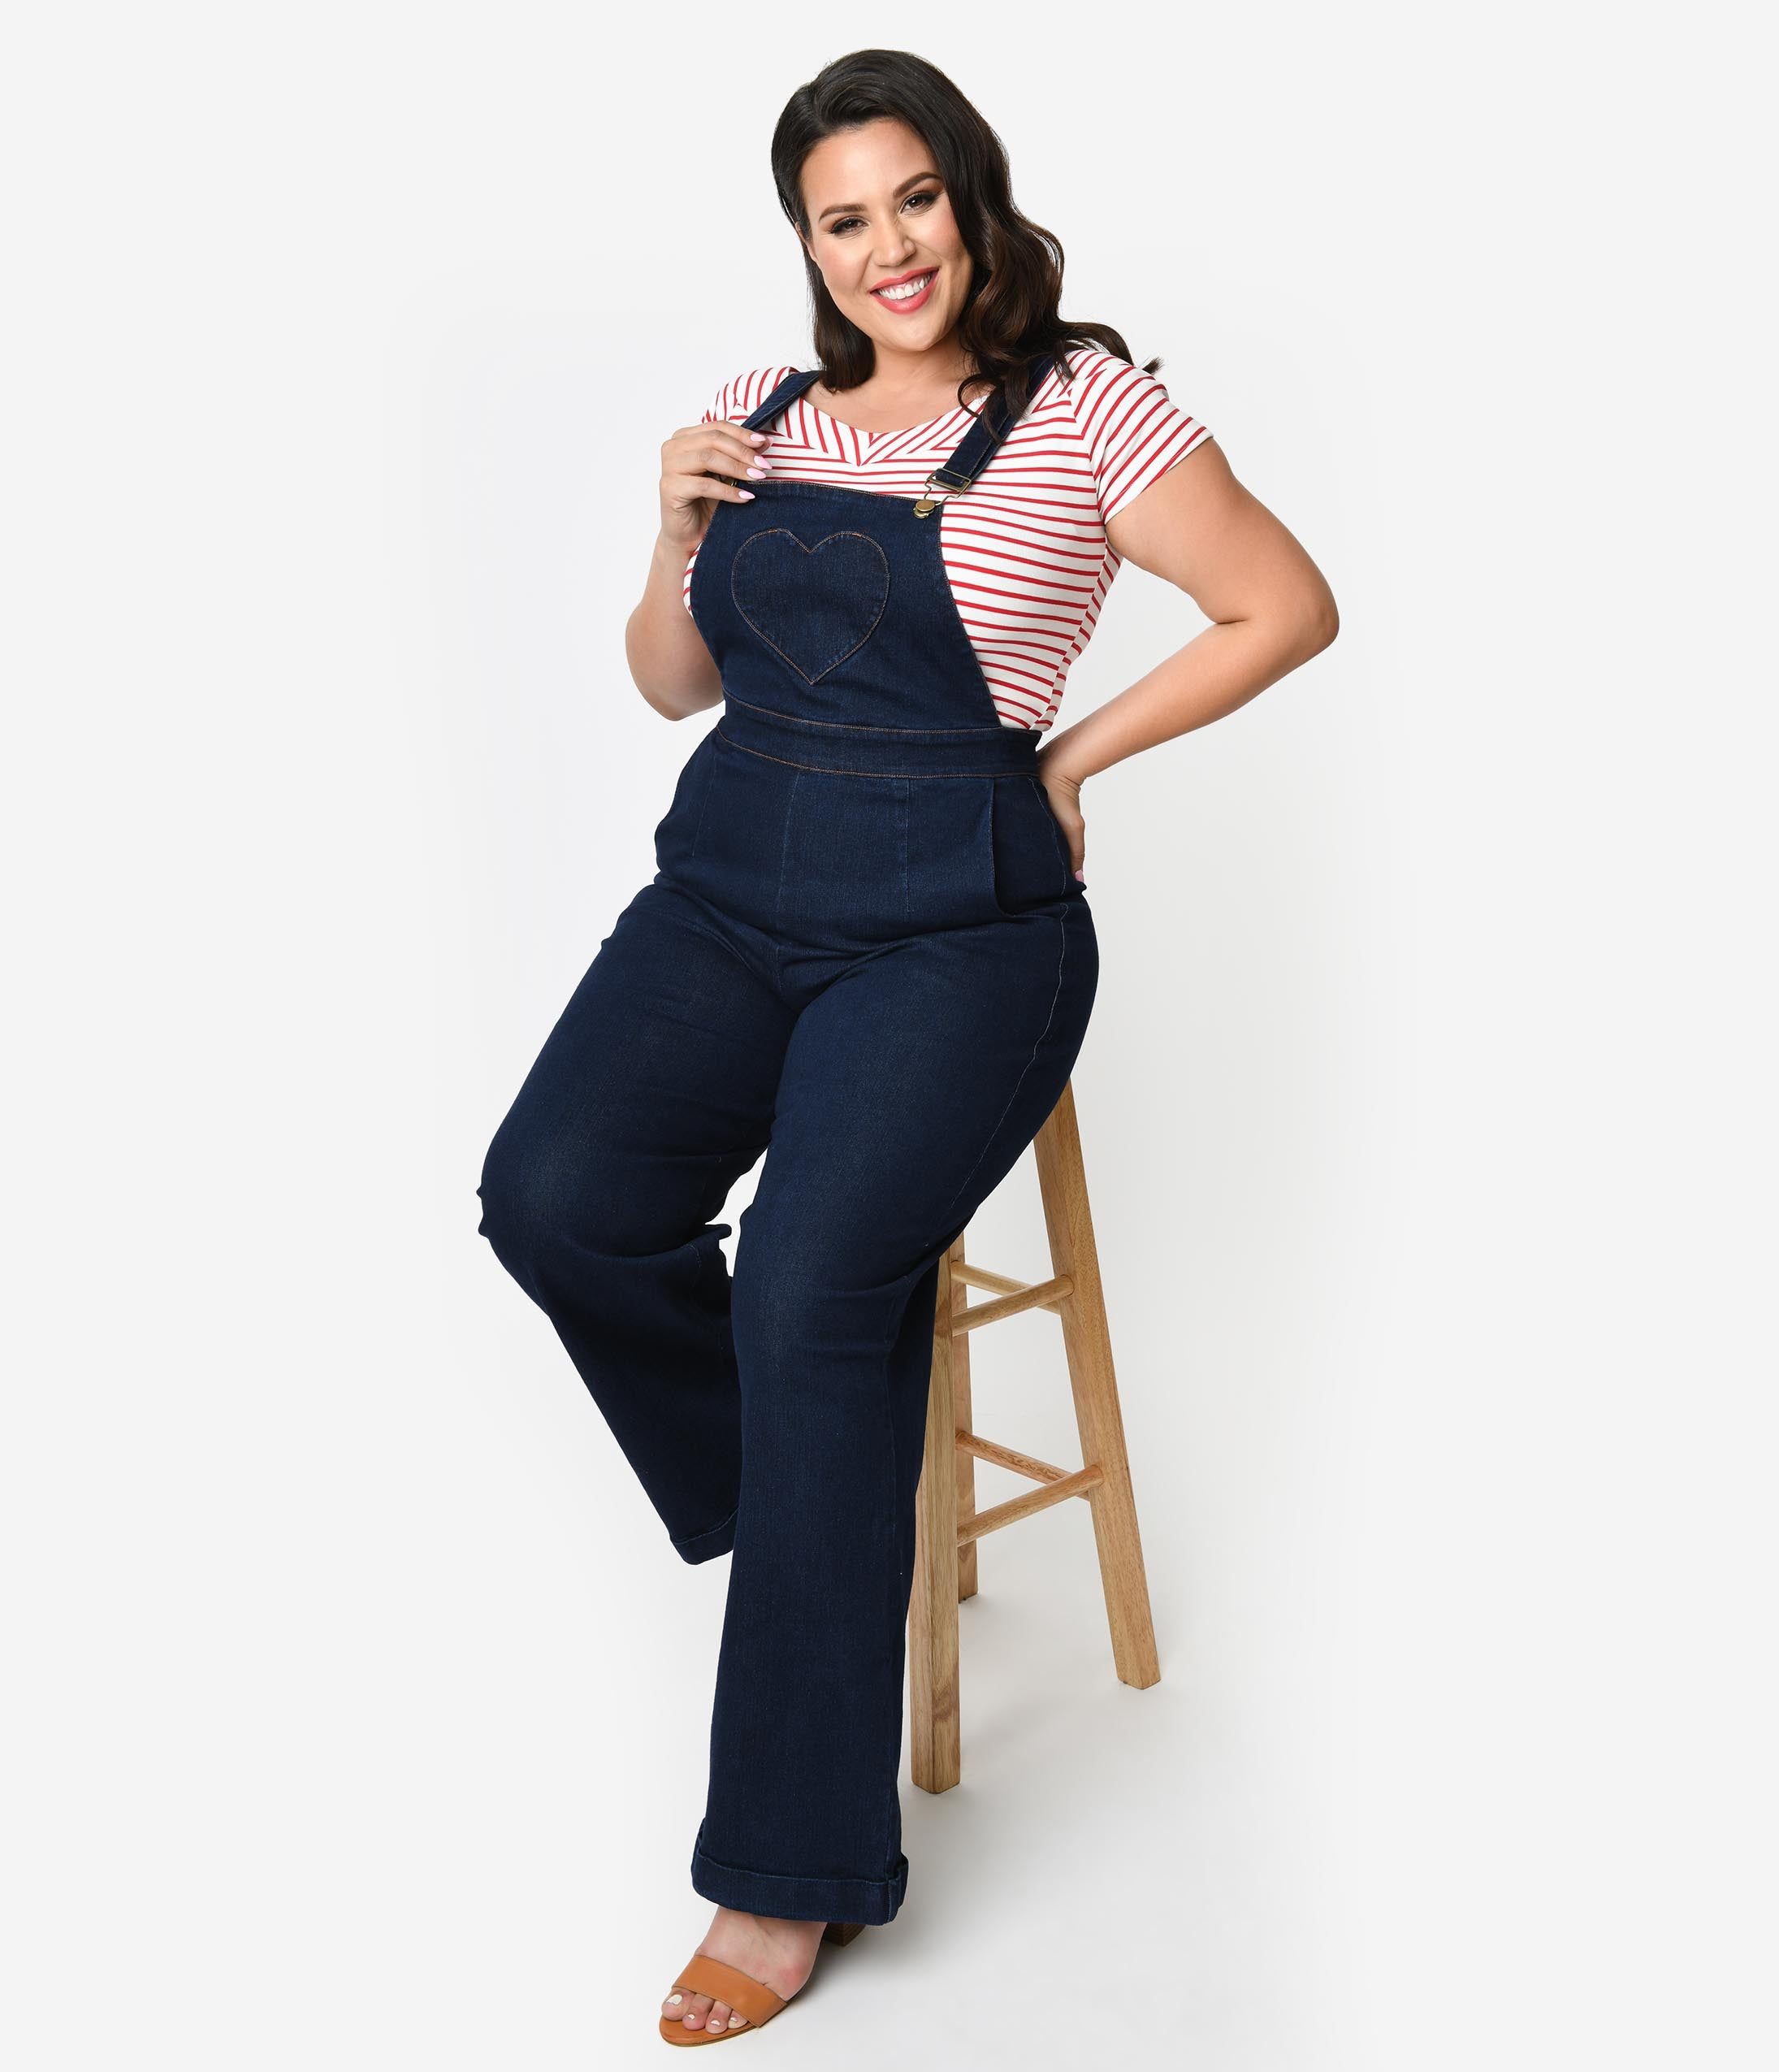 Vintage Overalls 1910s -1950s History & Shop Overalls Voodoo Vixen Plus Size Dark Denim Blue Jeans Cotton Heart Pocket Natalia Overalls $88.00 AT vintagedancer.com